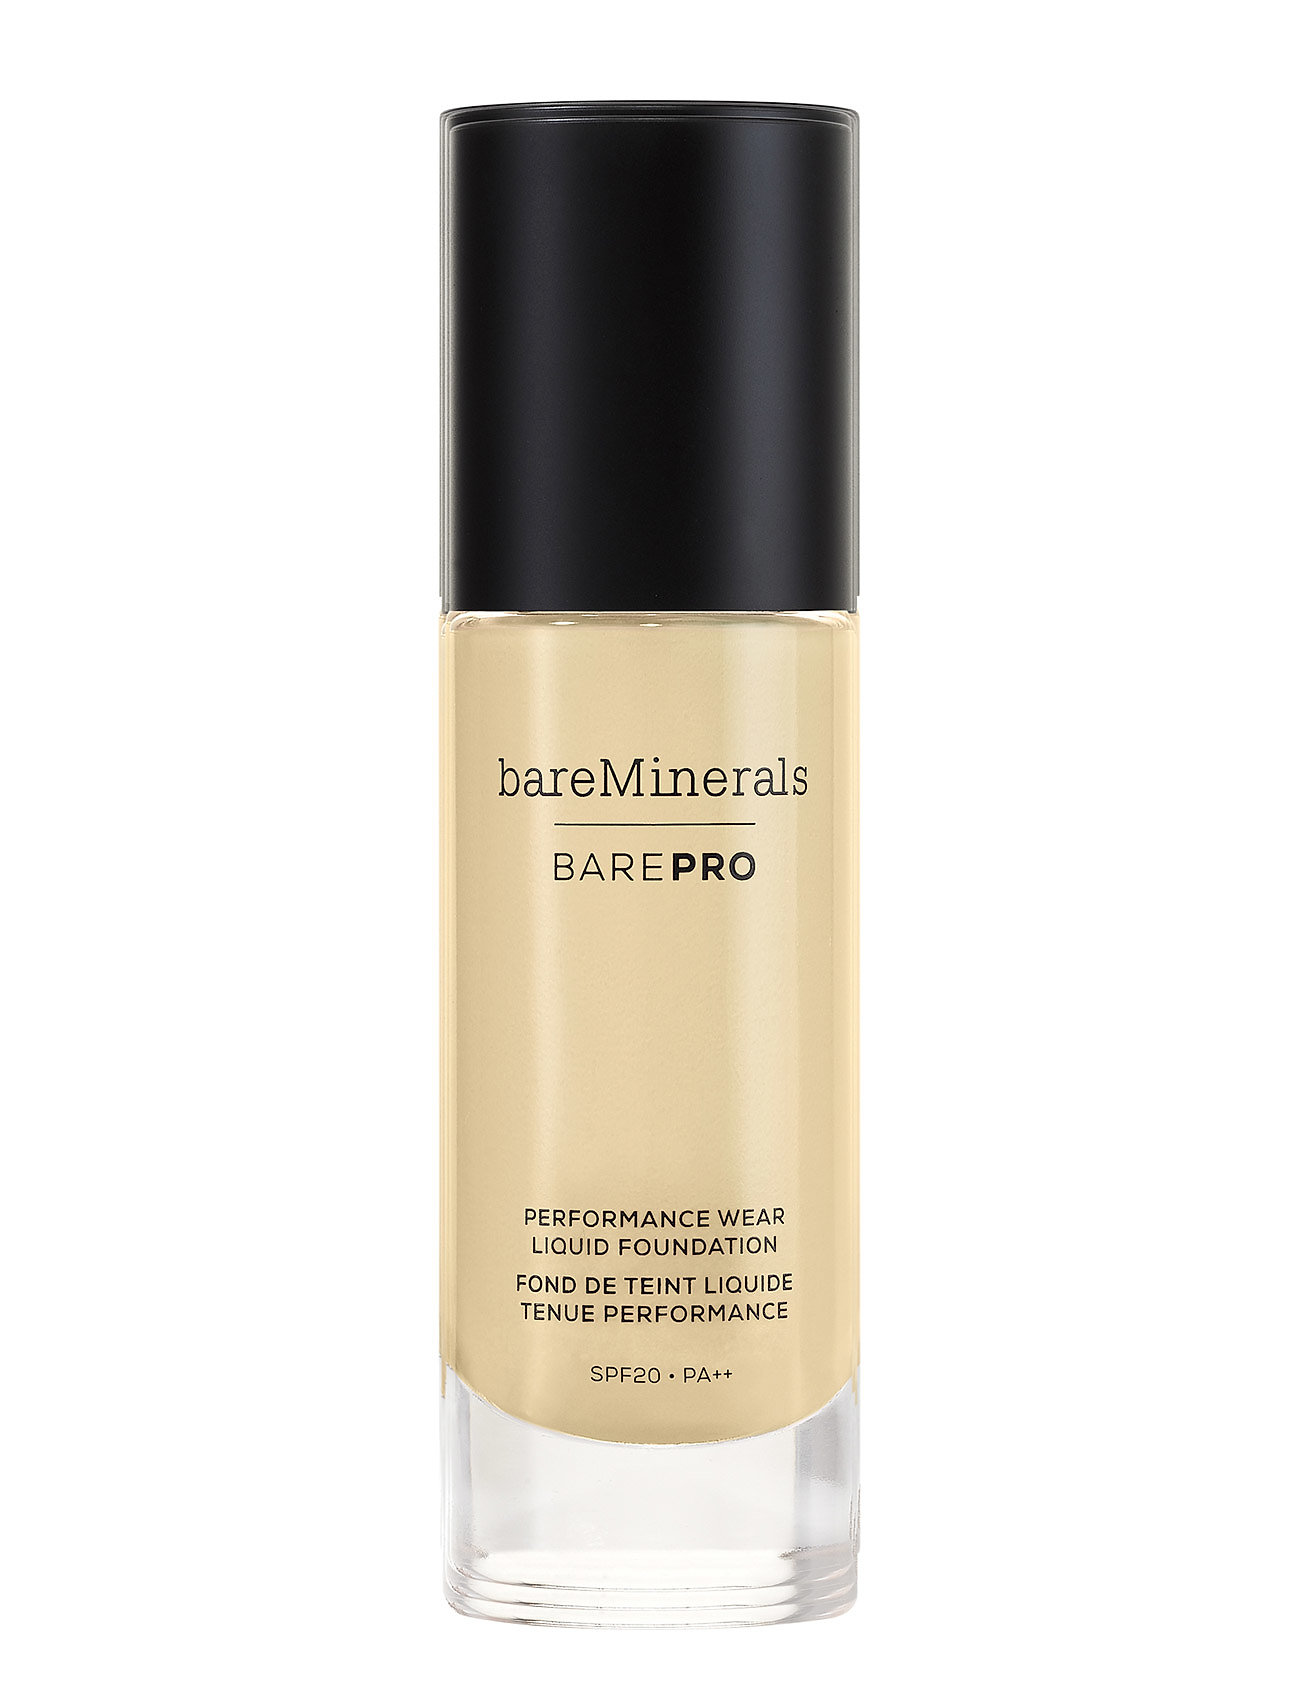 Image of Barepro Performance Wear Liquid Foundation Spf 20 Foundation Makeup BareMinerals (3067521649)